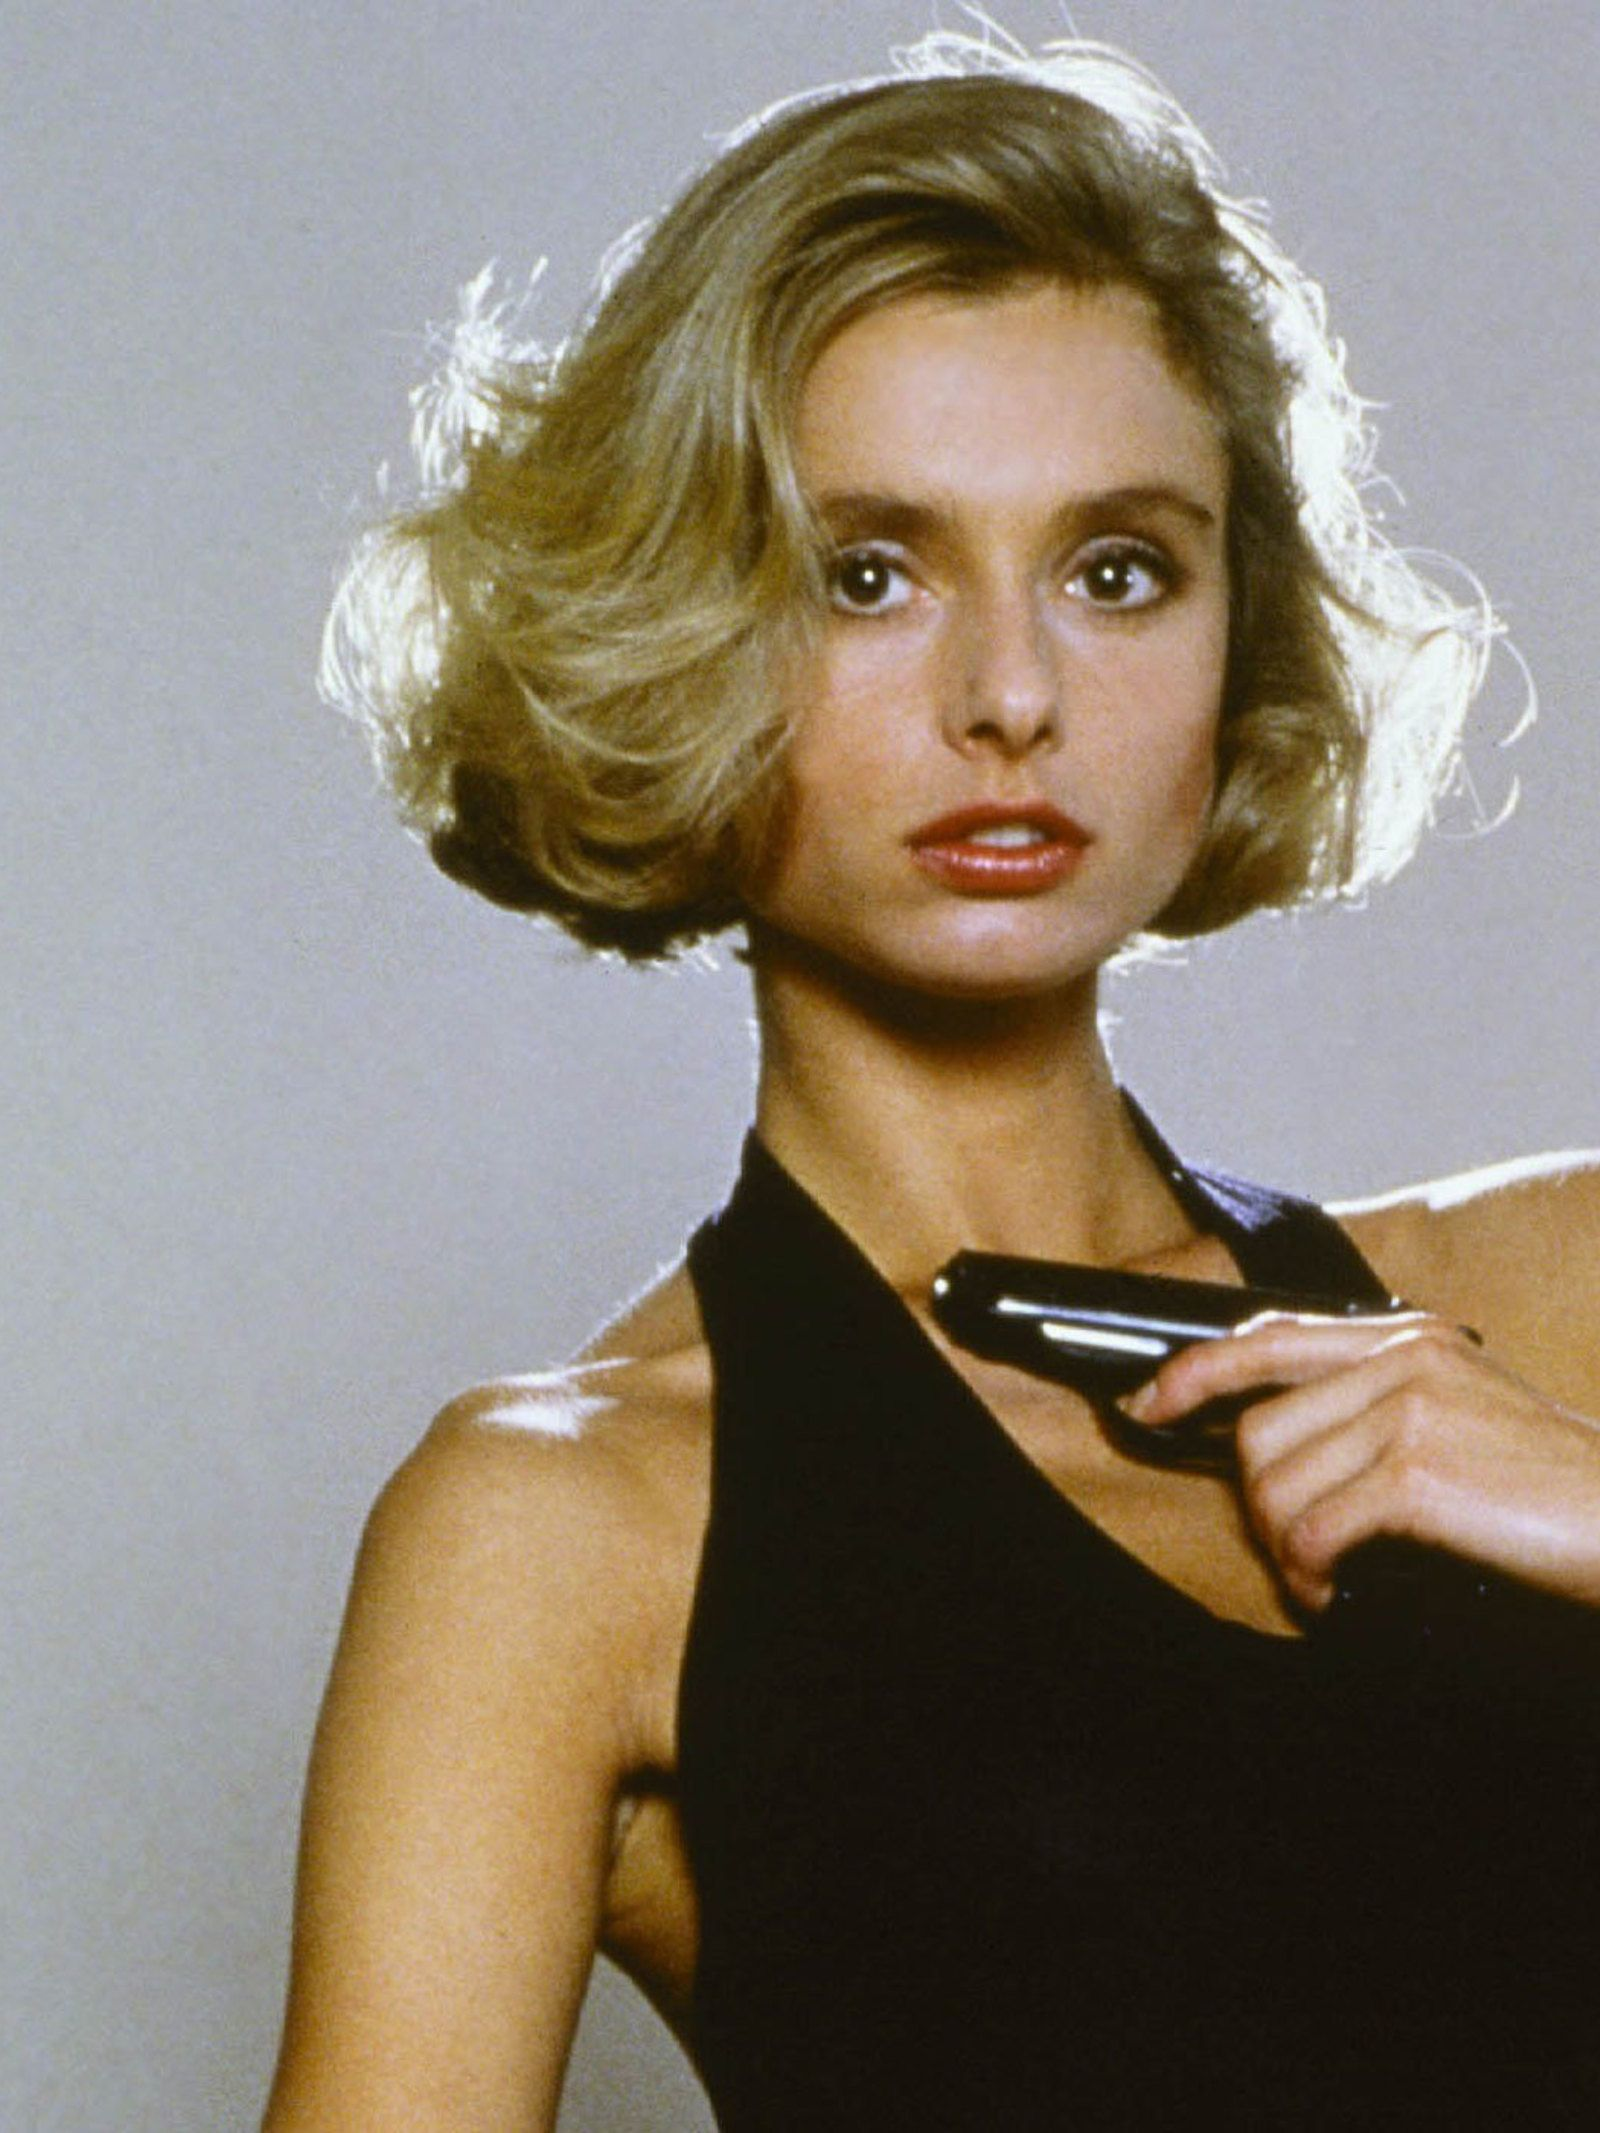 the most iconic bond girl hairstyles of all time | keith